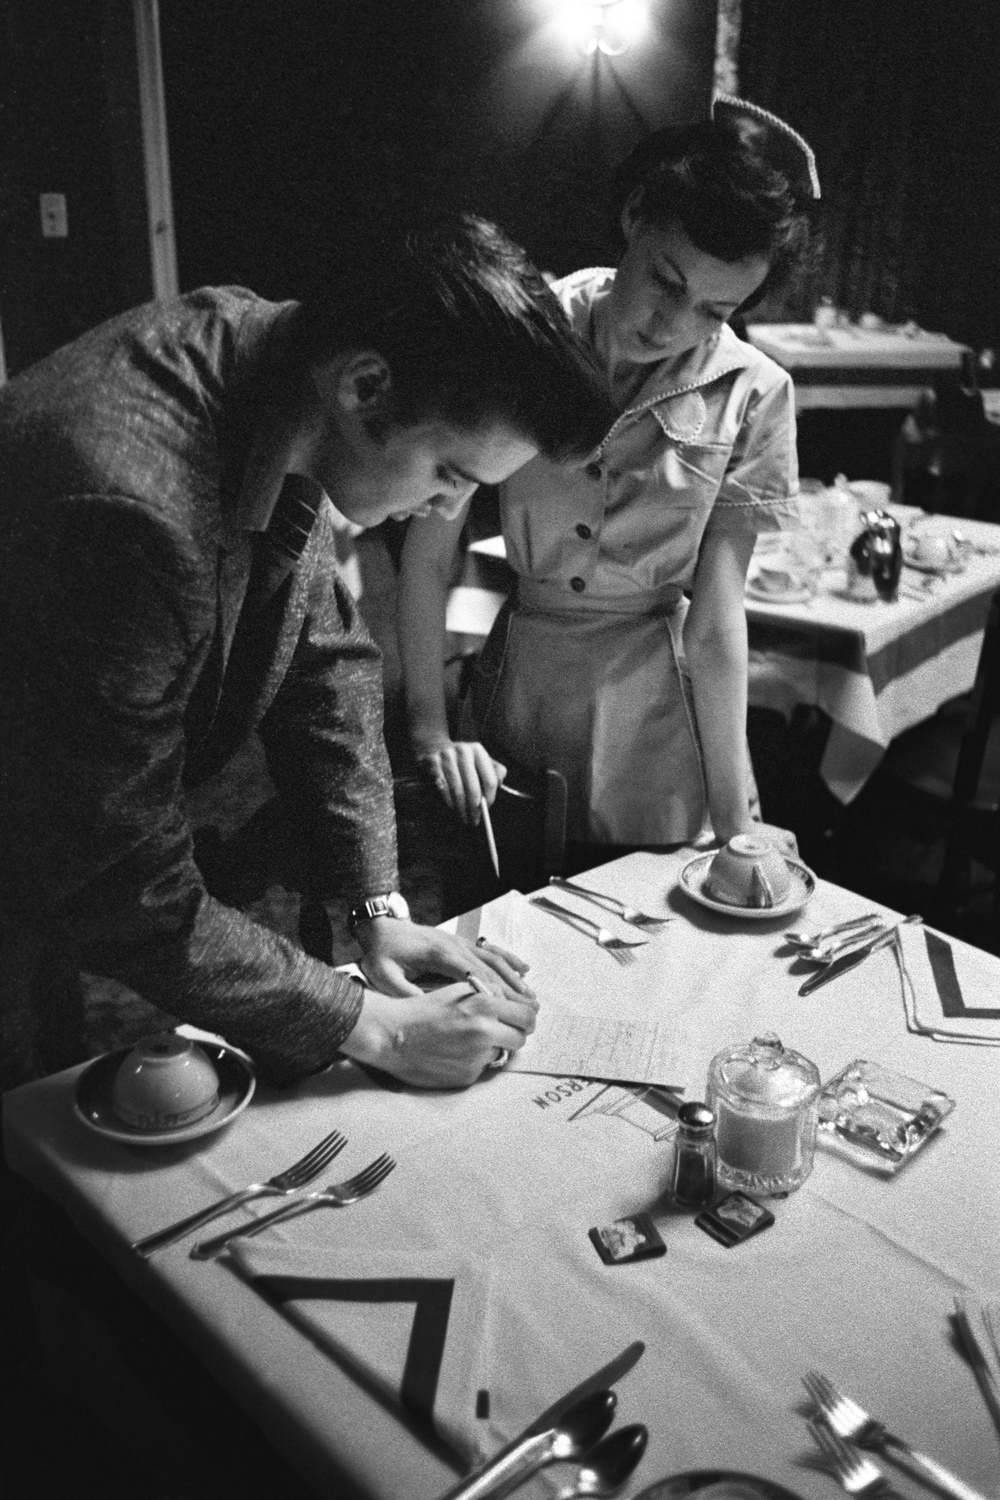 Even his favorite waitress wanted his autograph for her mother.